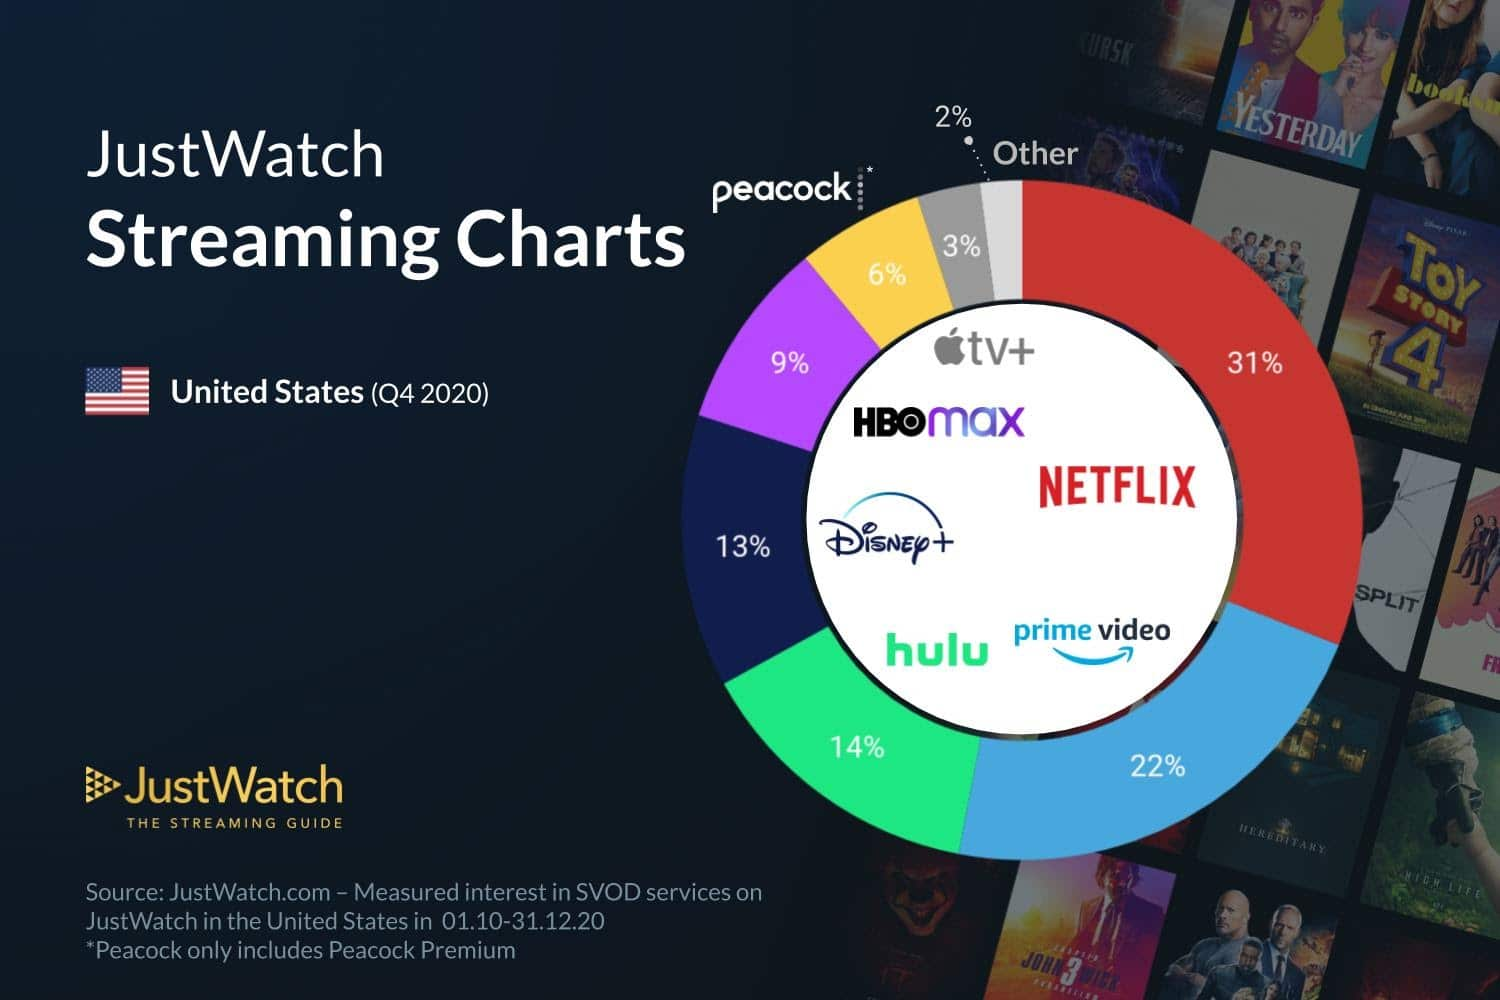 These are the top 5 streaming services 13